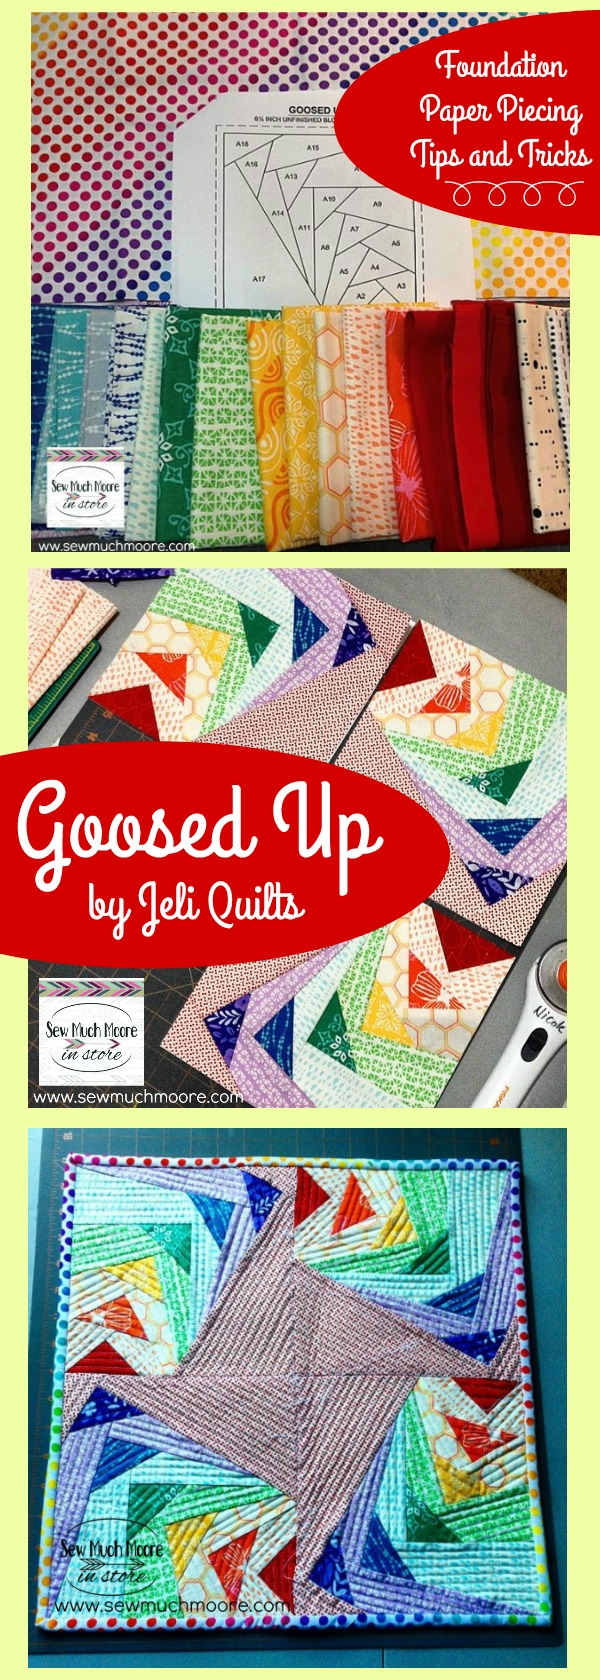 Goosed Up Foundation Paper Piecing Pattern